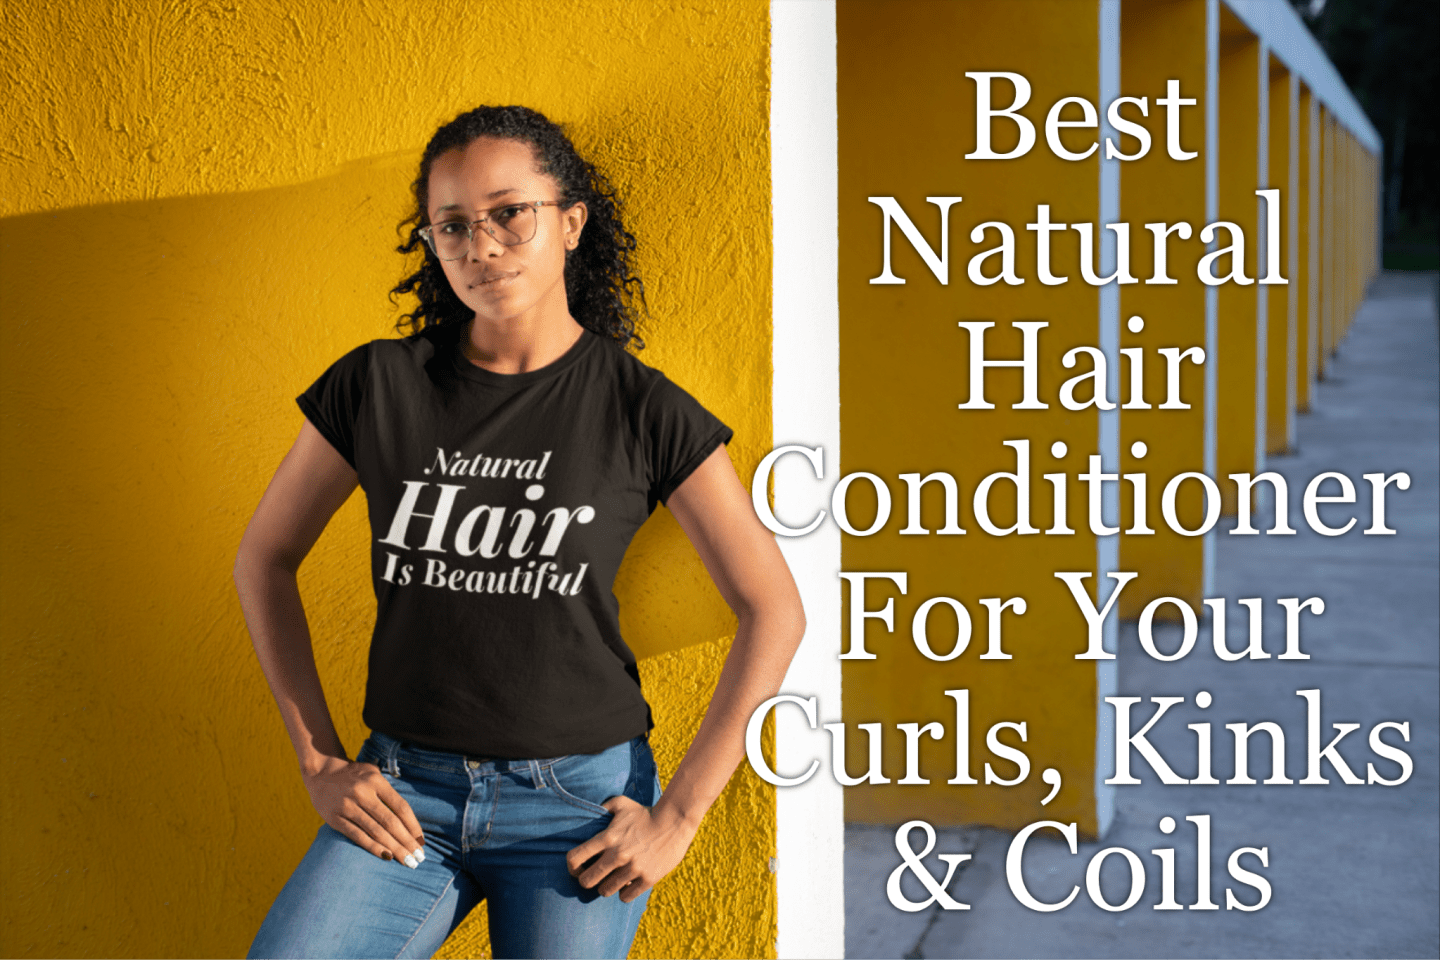 Best Natural Hair Conditioner For Your Curls, Kinks & Coils For Moisture, Softness and Protection. Get the best types, brands and know-how.